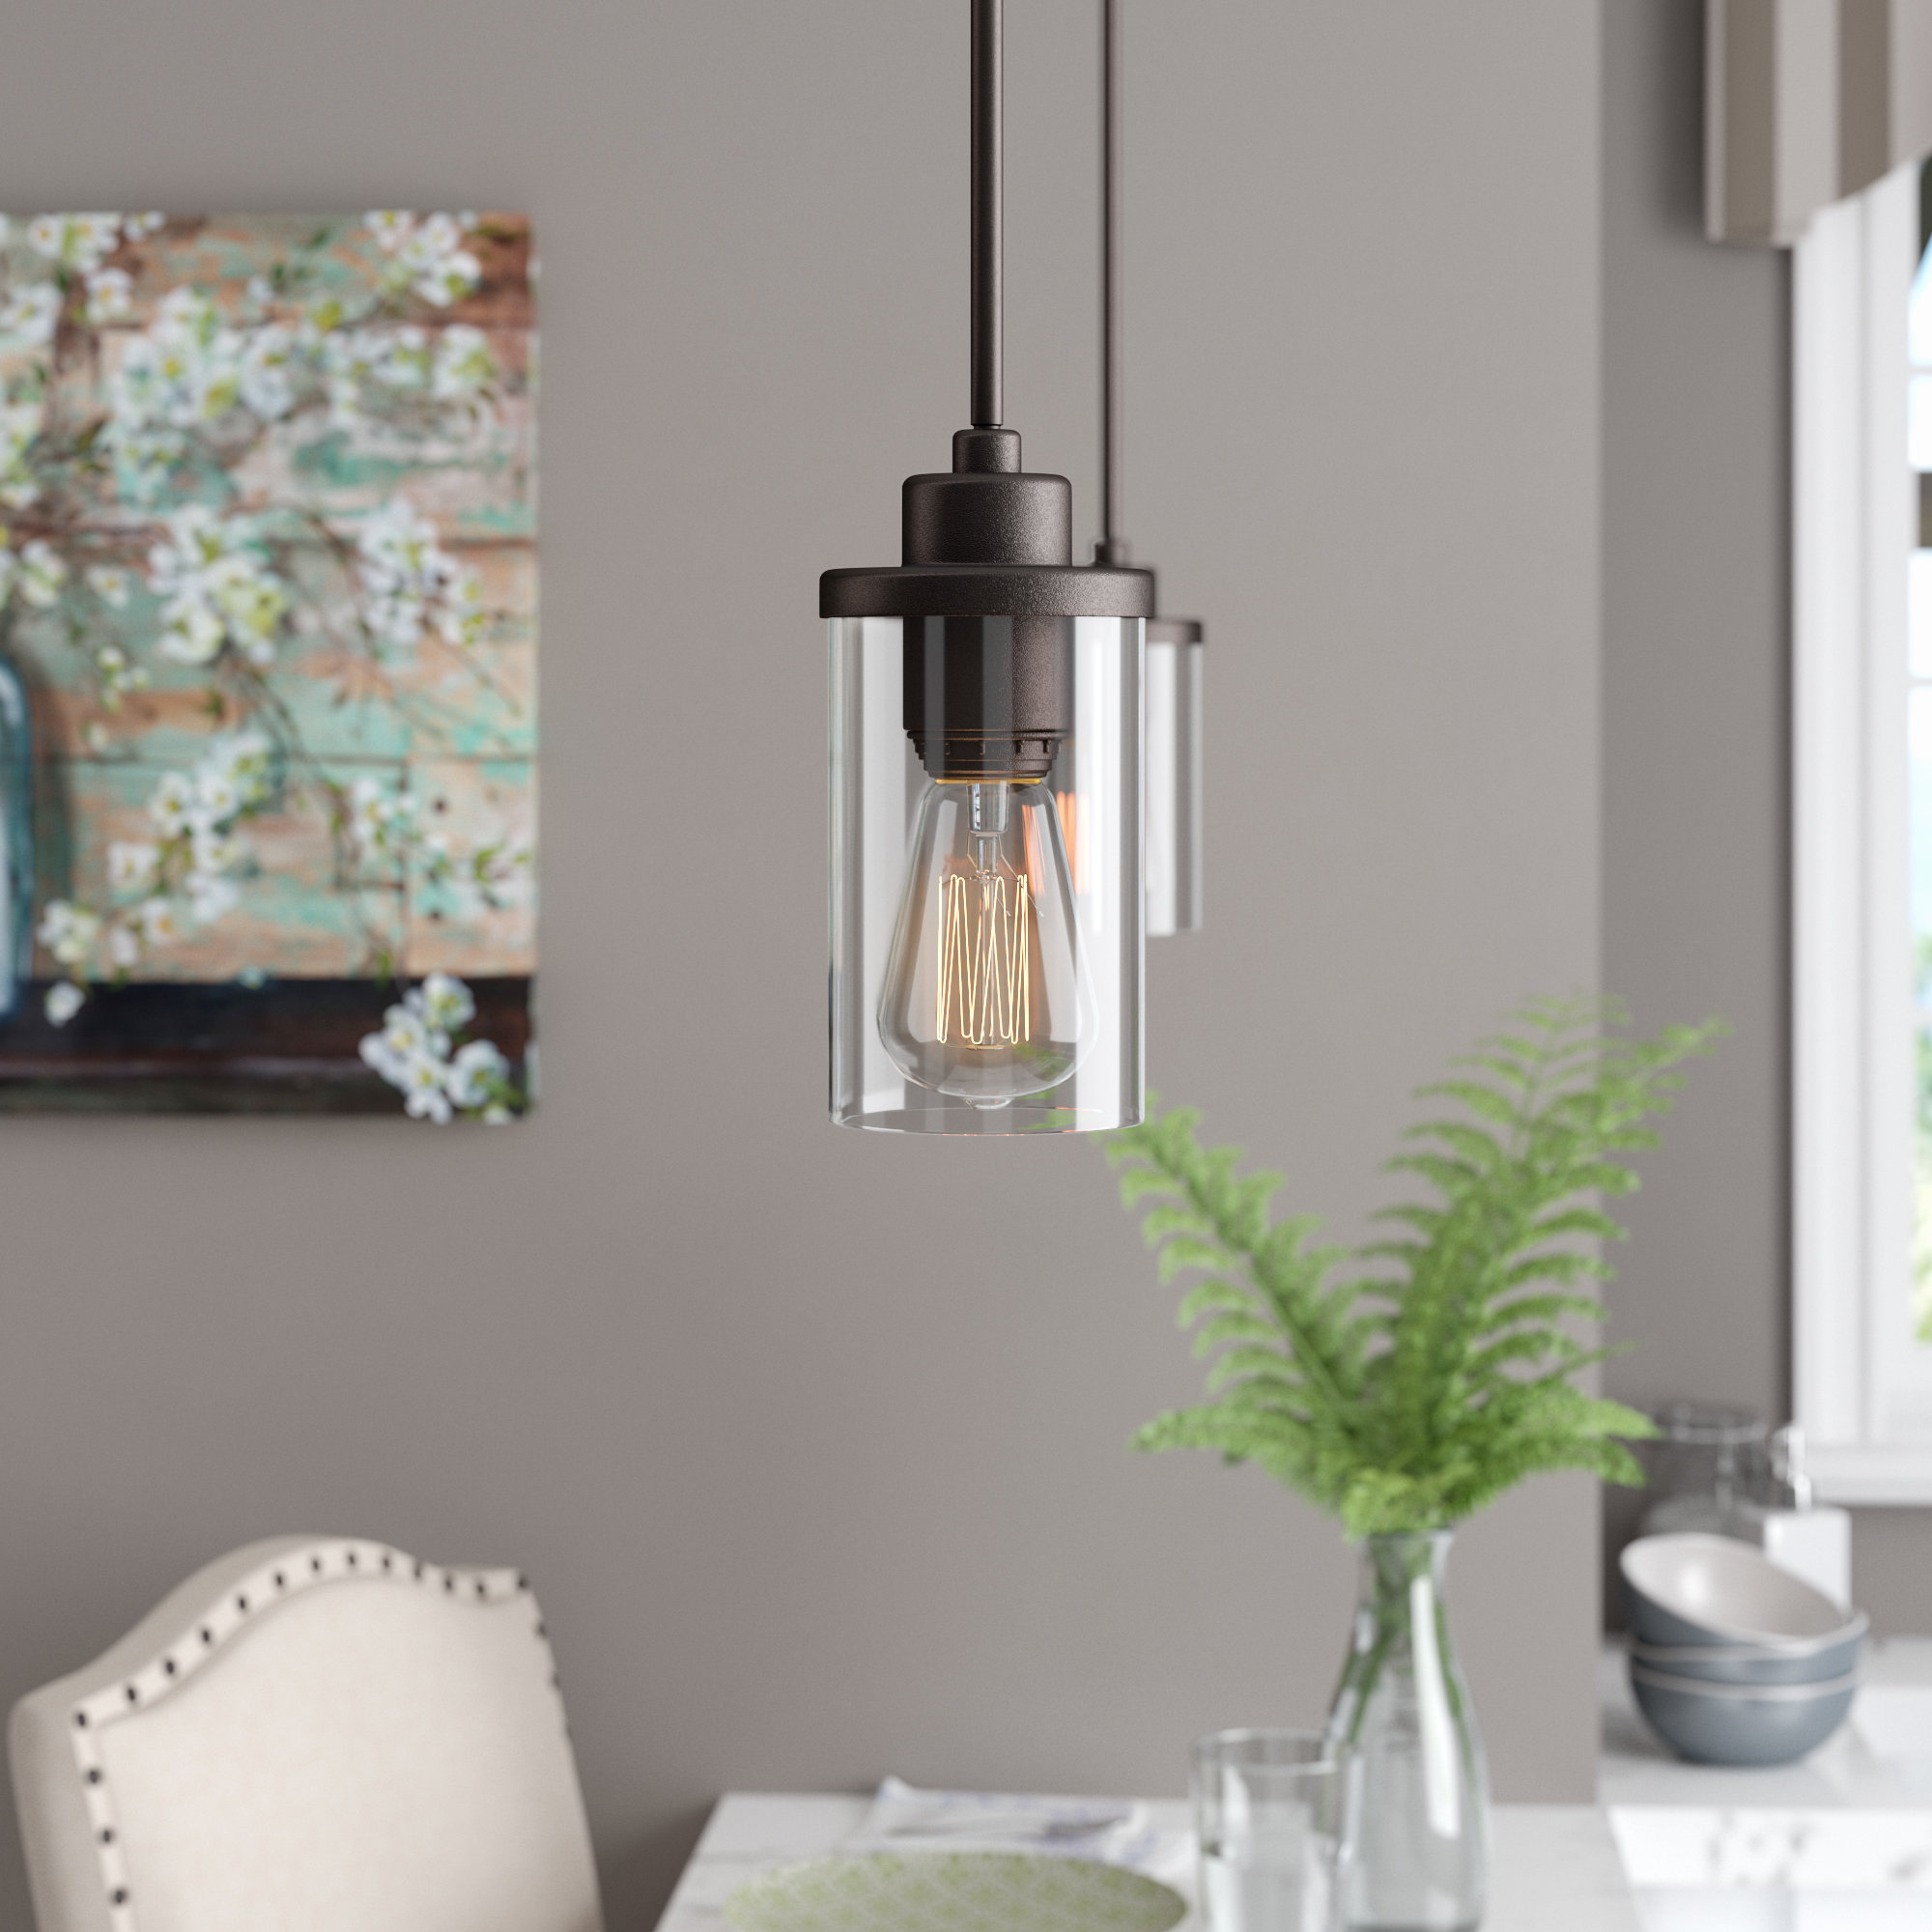 Angelina 1 Light Single Cylinder Pendants For Well Known Florine 1 Light Single Cylinder Pendant (View 6 of 20)